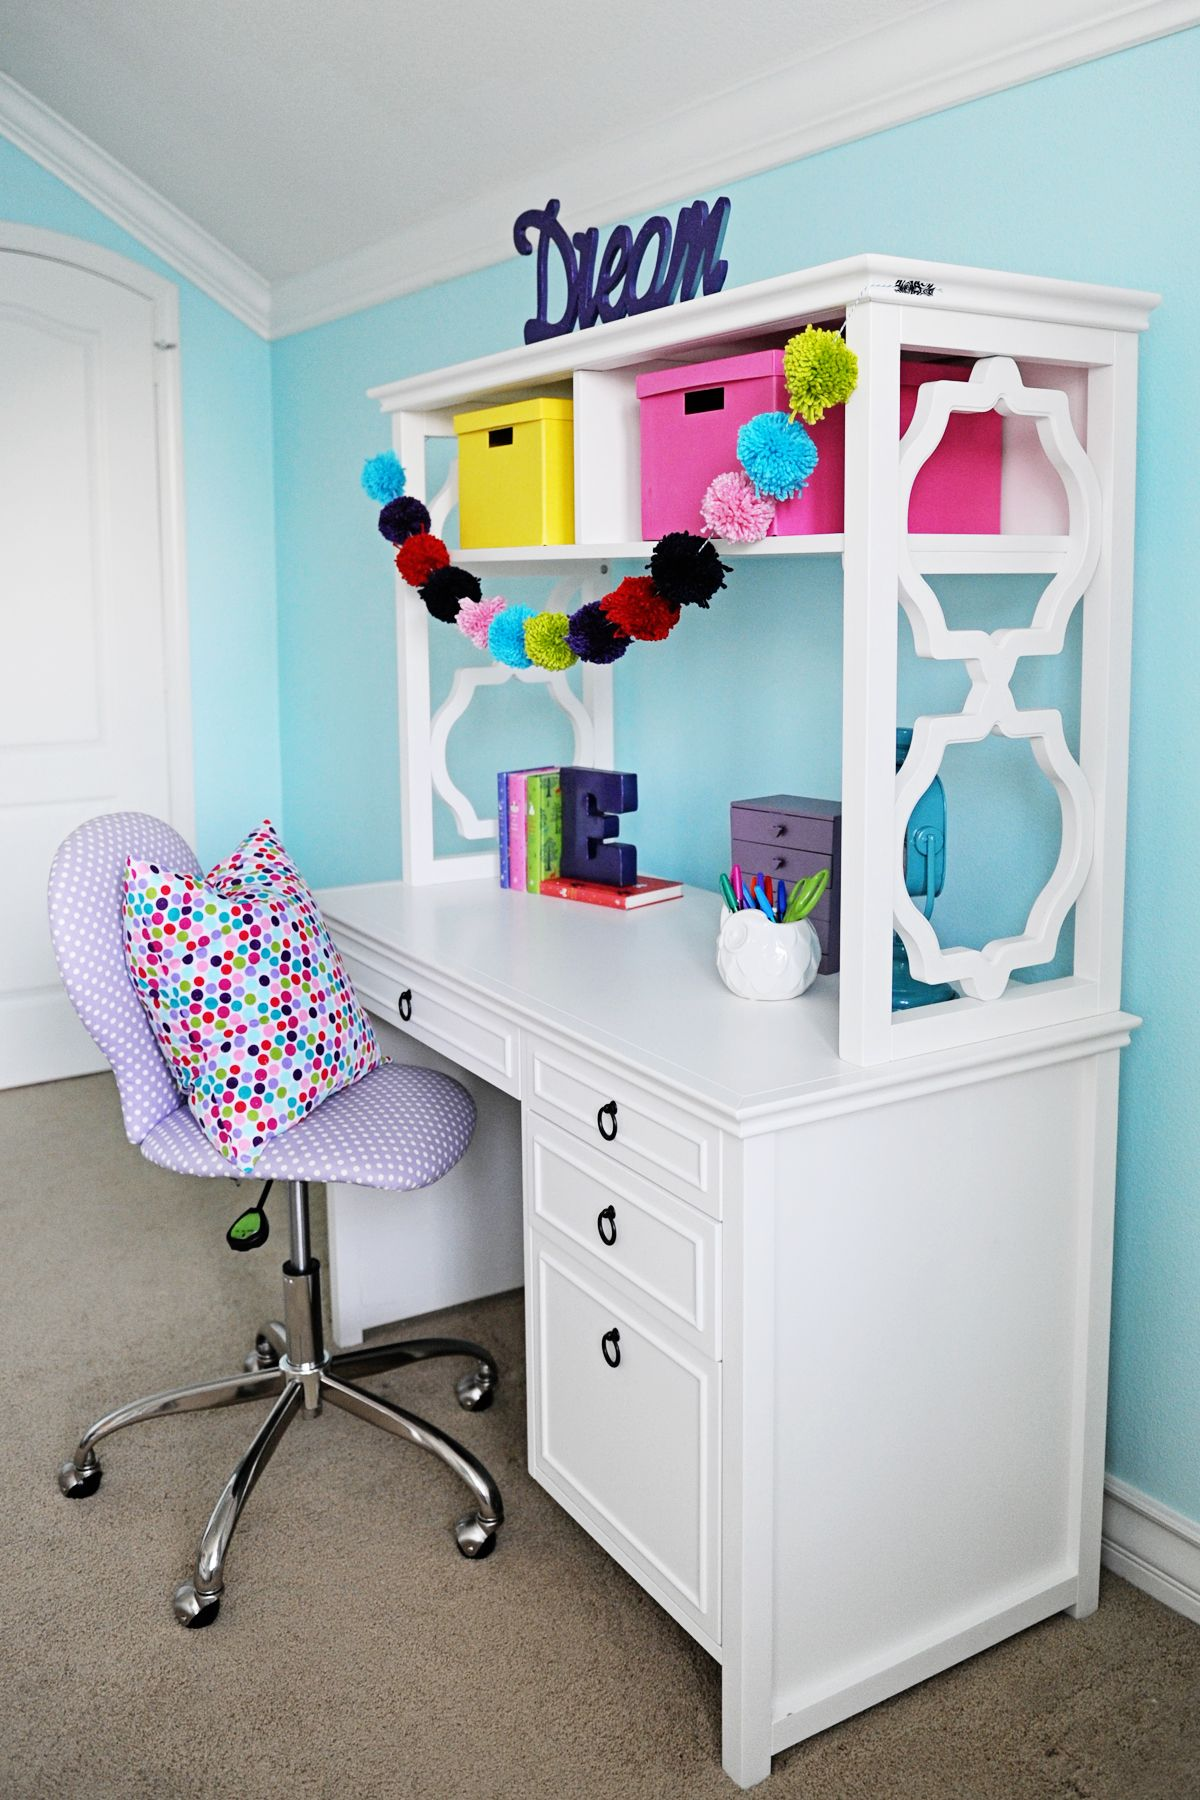 Pin By Interior Designer In A Box On Kids Teenager: Interior Design: Tween Girl Bedroom Design Purple And